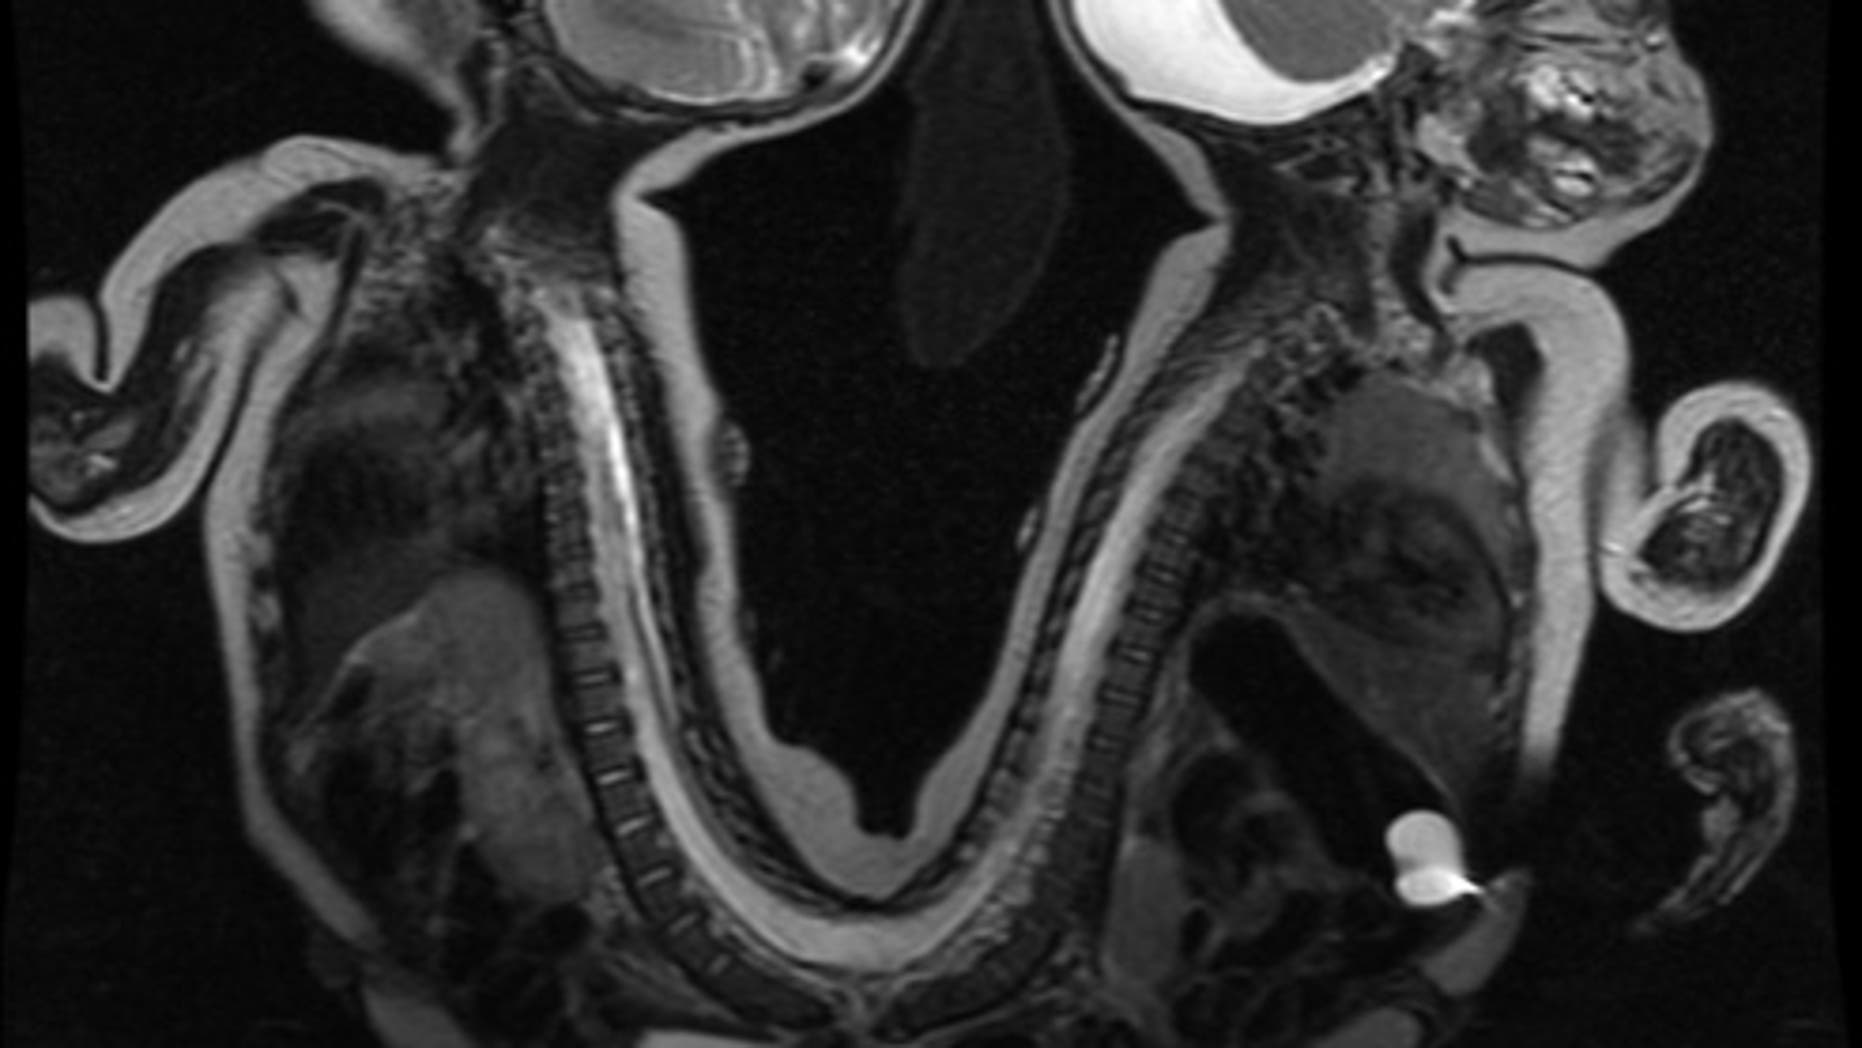 The conjoined twins in a MRI image before they were separated.